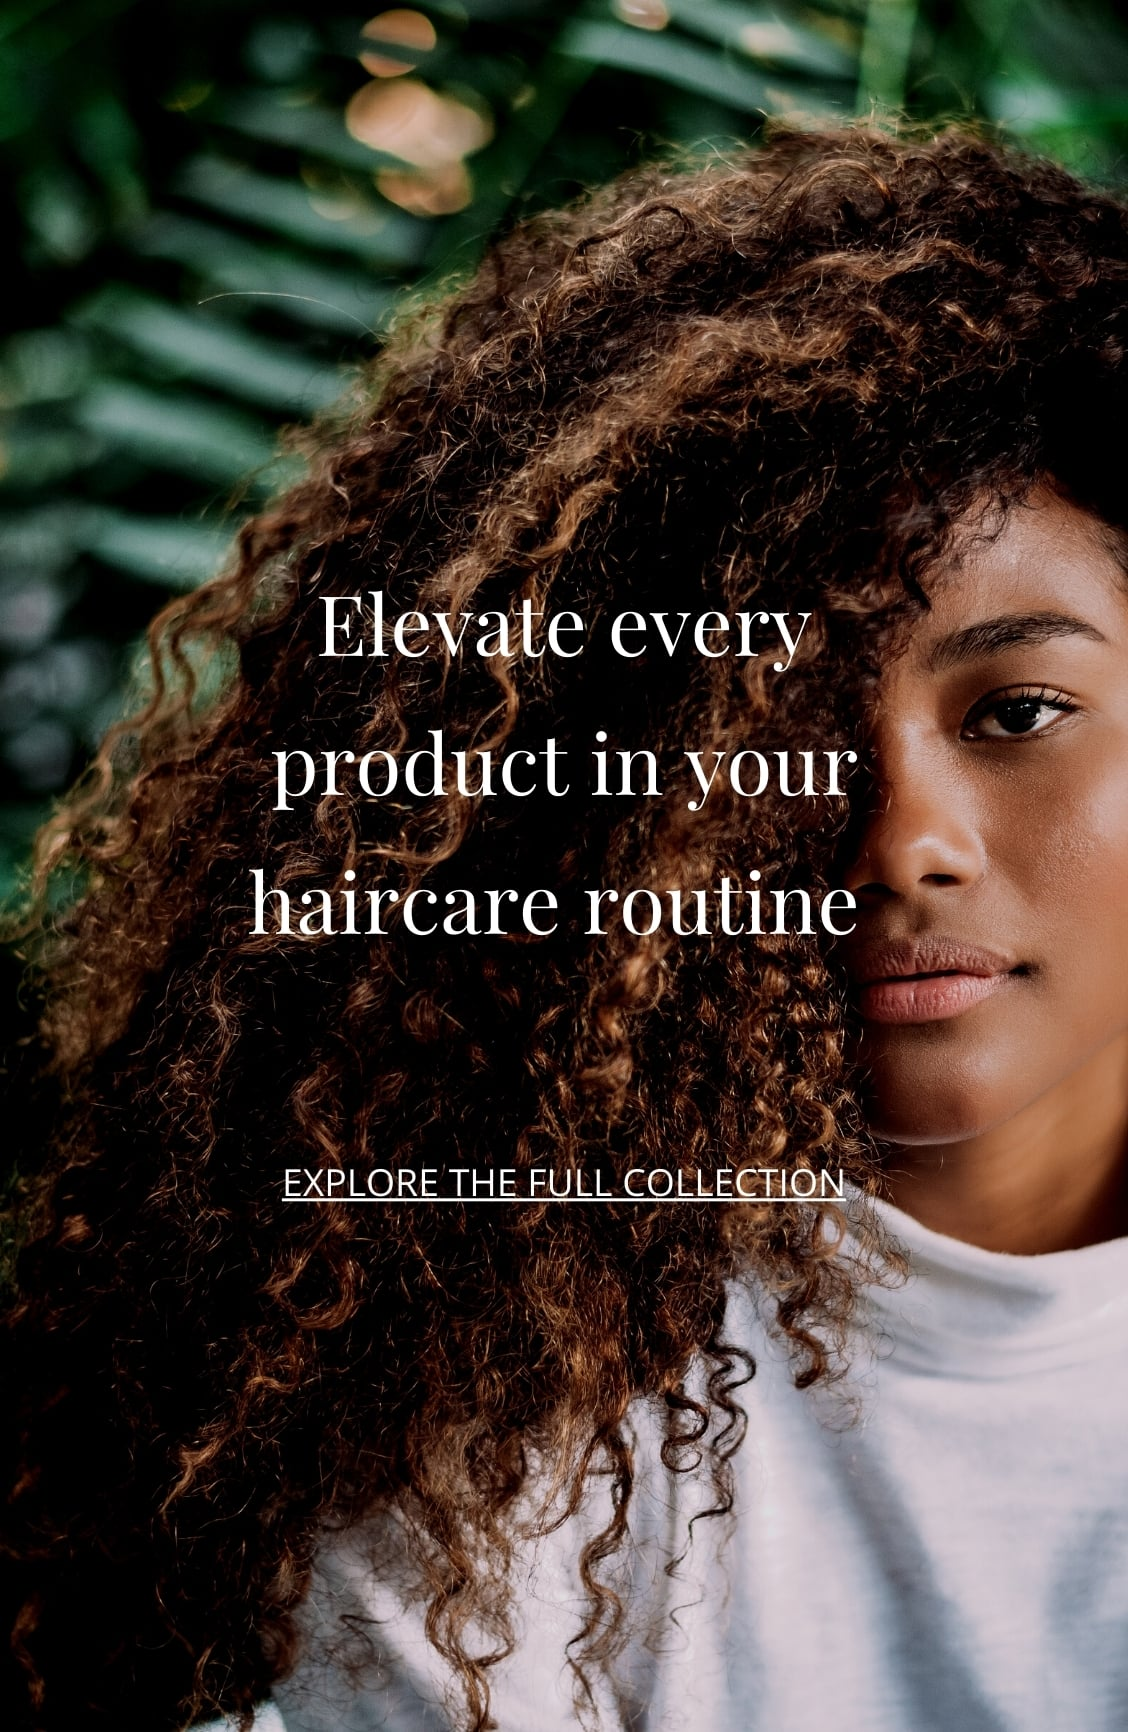 Elevate every product in your haircare routine